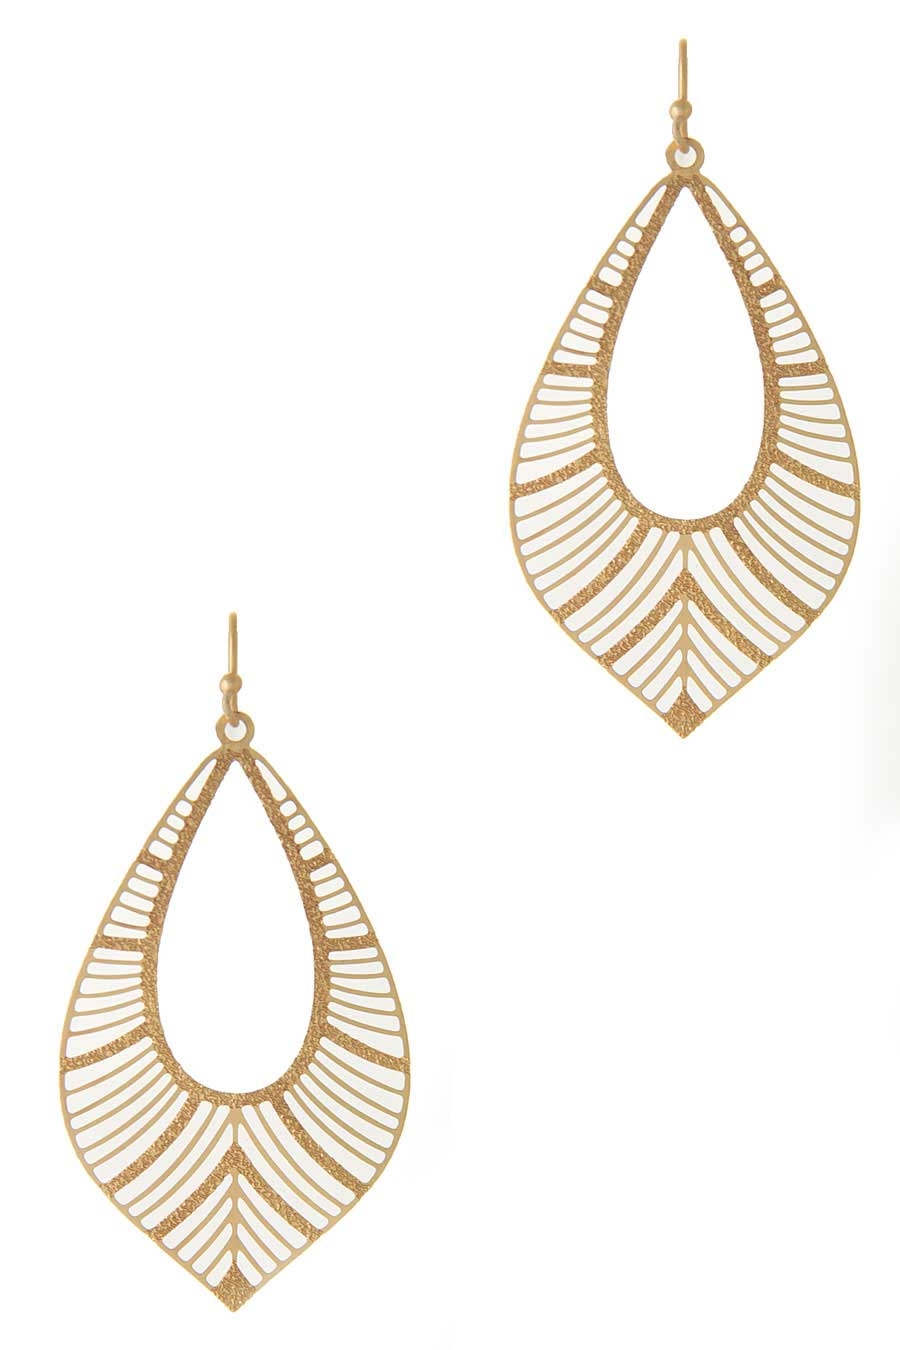 TEARDROP EARRING - orangeshine.com